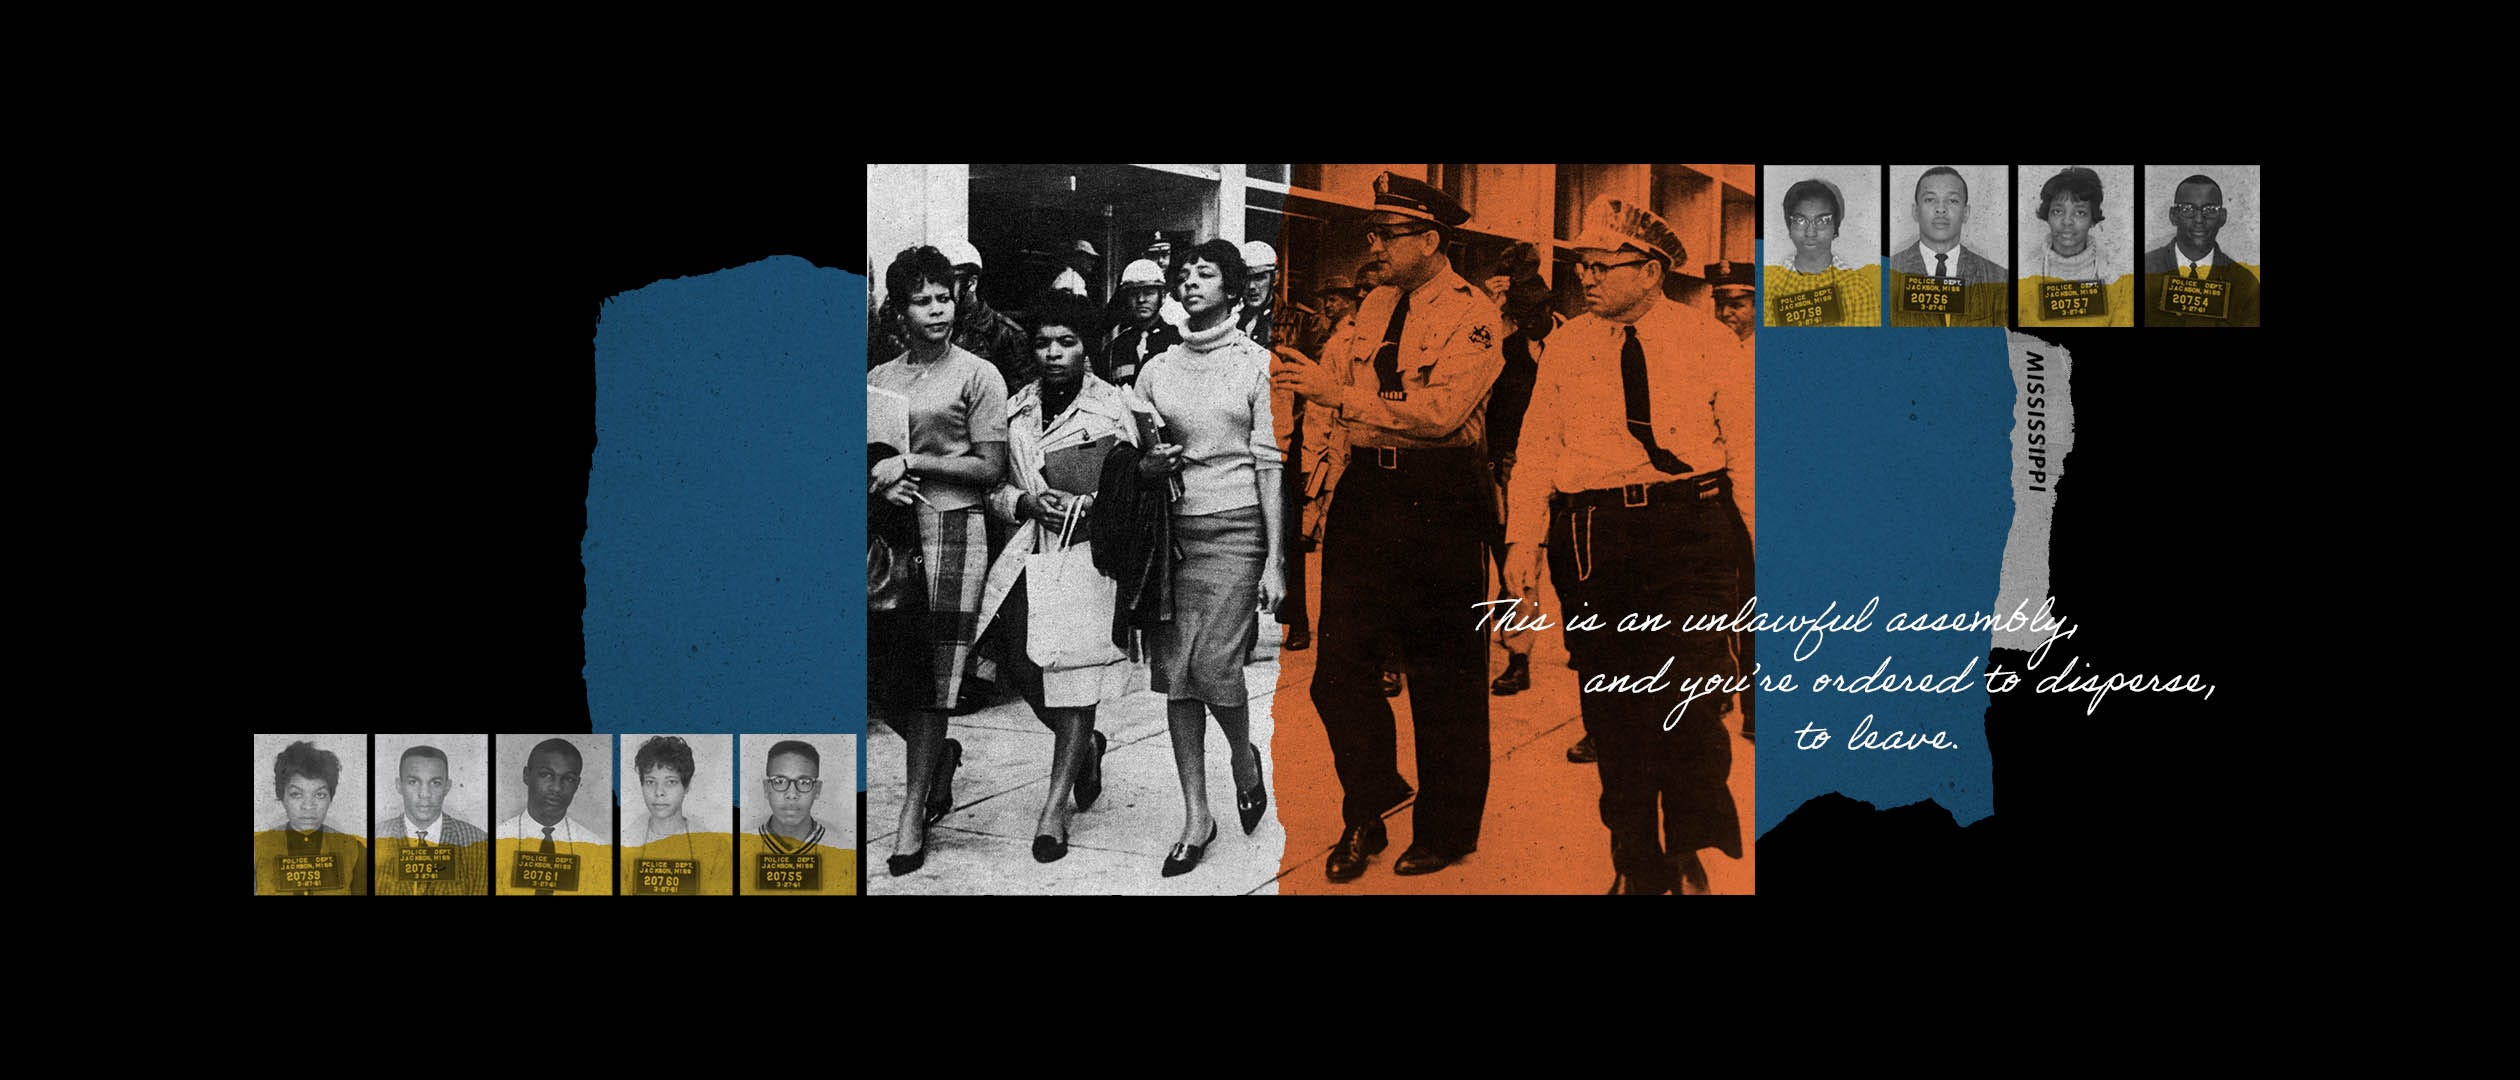 """A """"read-in'' led by the students who became known as the Tougaloo Nine inspired a Black youth activism movement in Mississippi."""